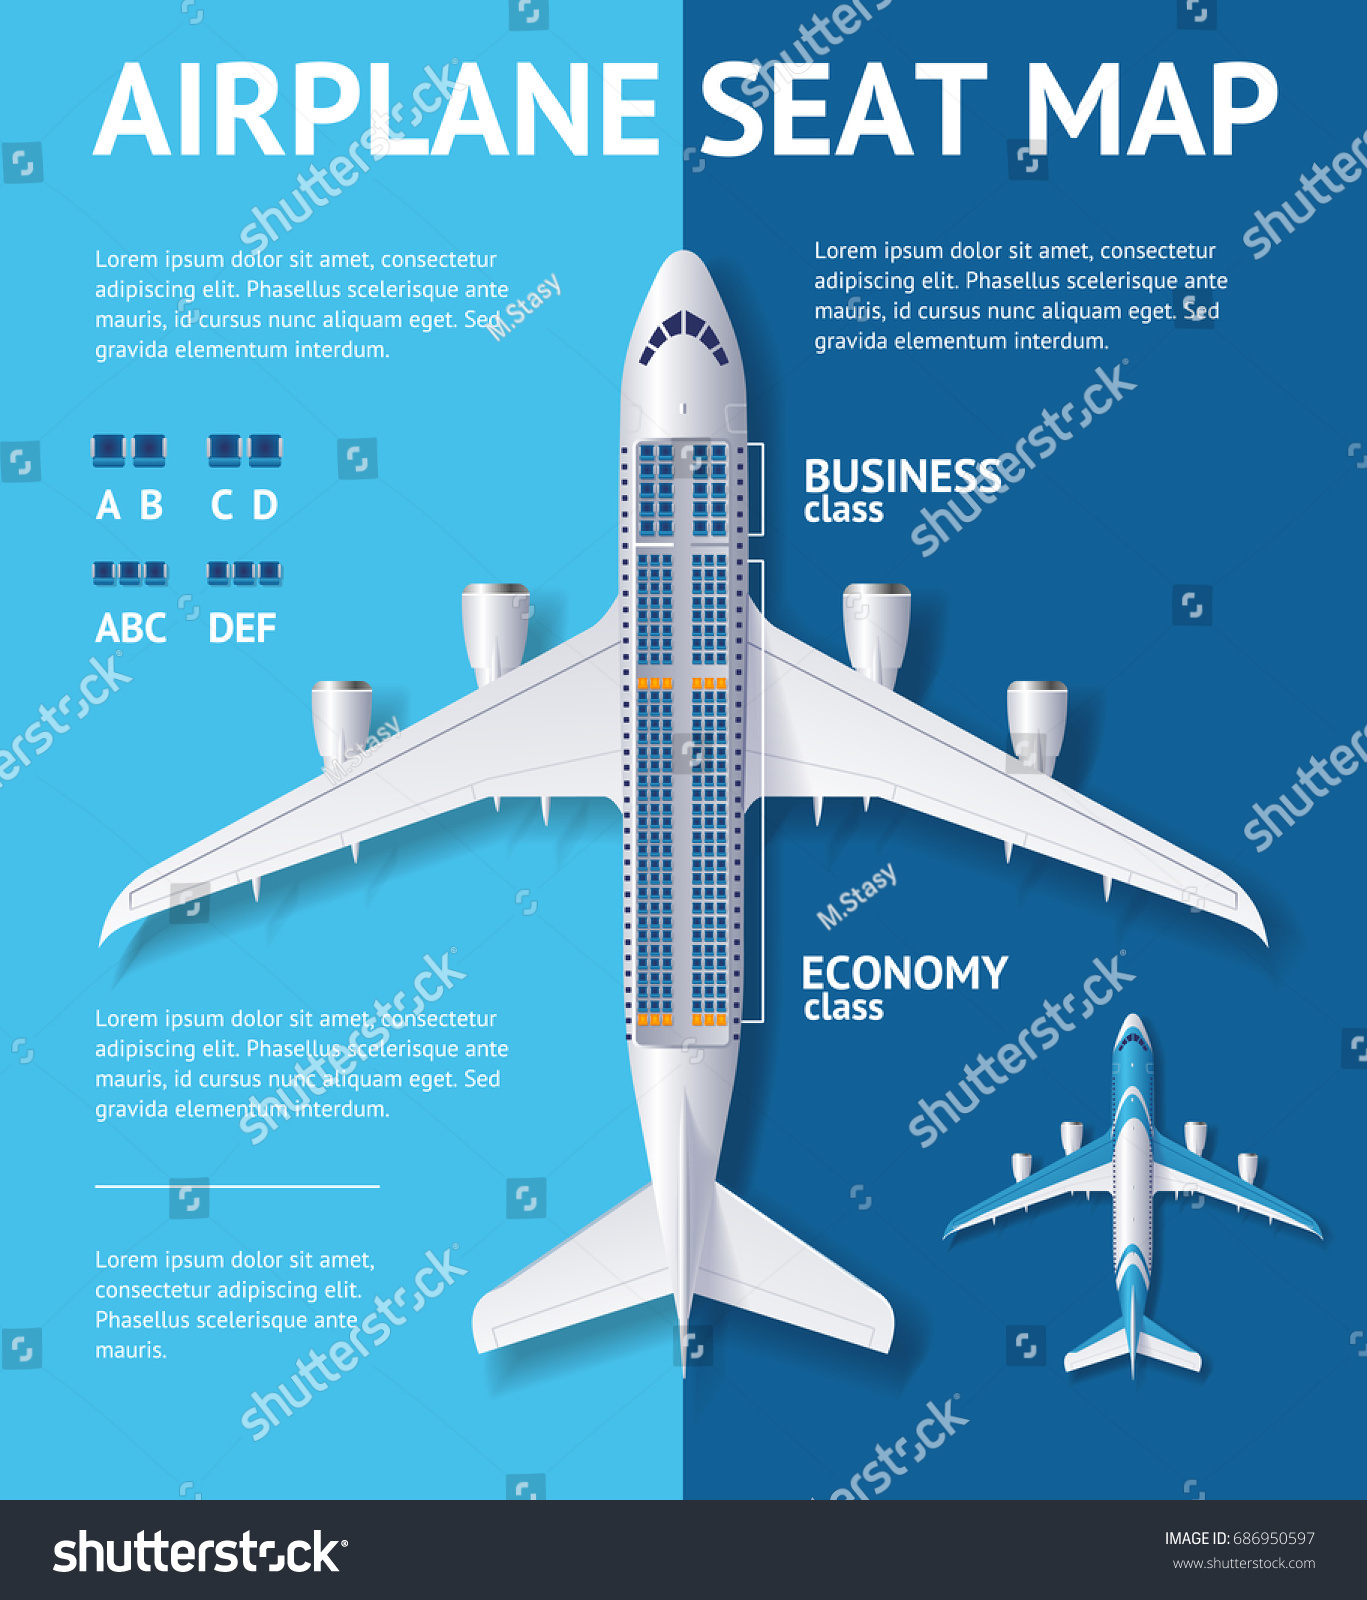 Airplane Seat Map Business Economy Class Stock Vector 686950597 ...